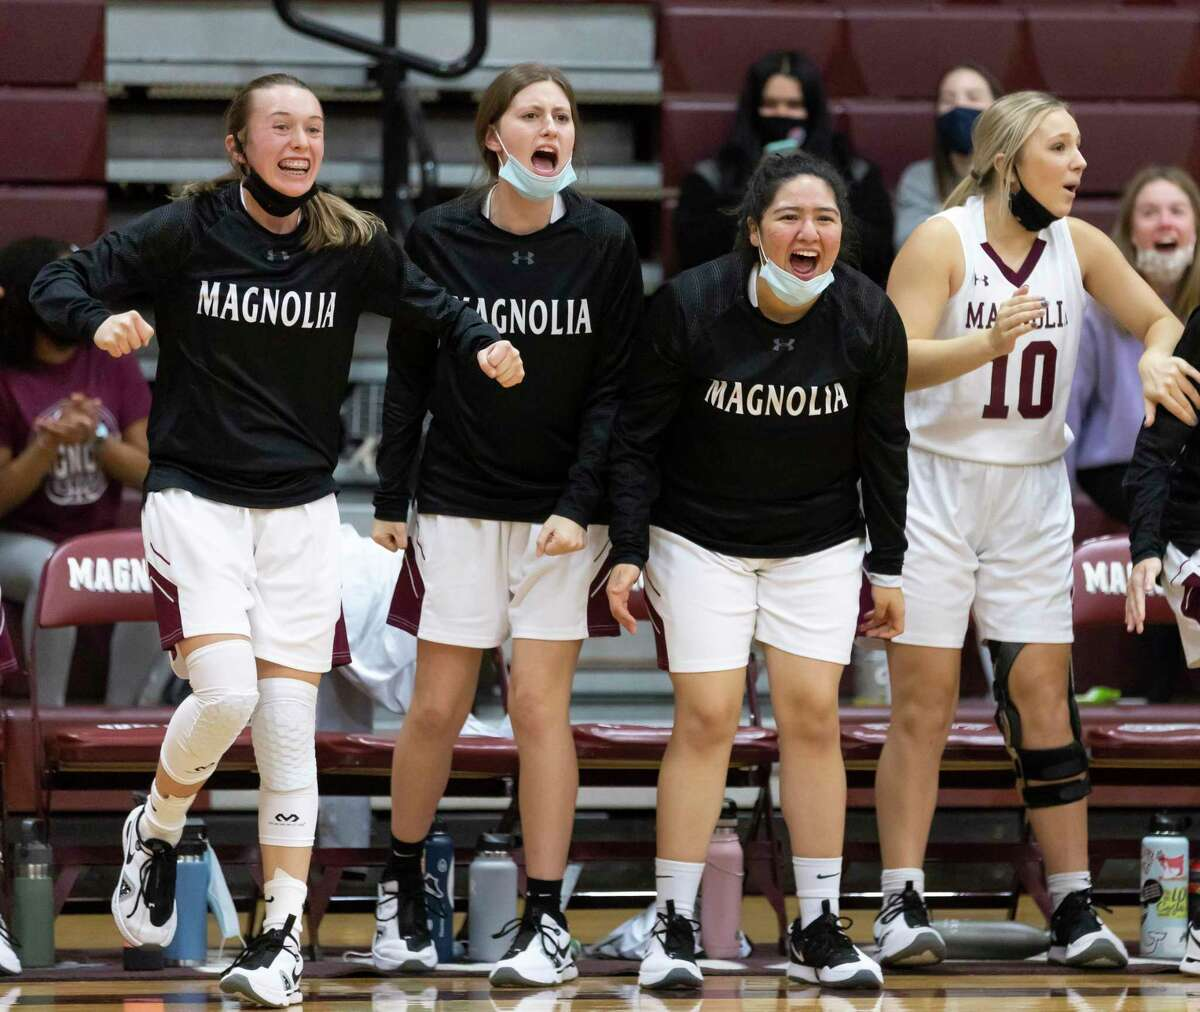 FILE PHOTO - Magnolia High School girls basketball team players react after their team ties 46-46 during the fourth quarter of a District 19-5A girls basketball game against Bryan Rudder at Magnolia High School, Tuesday, Jan 12, 2021, in Magnolia.